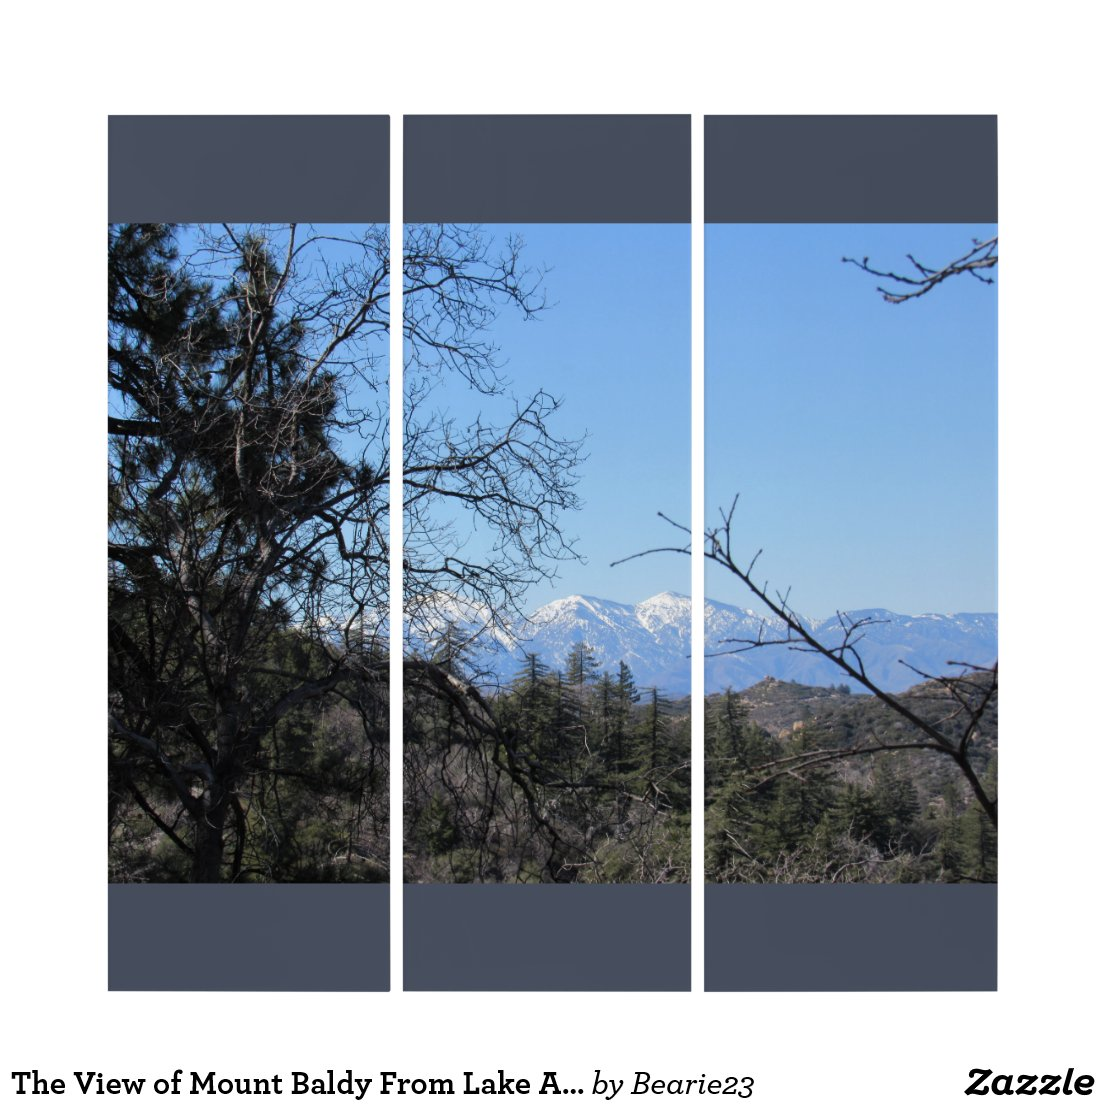 The View of Mount Baldy From Lake Arrowhead Triptych